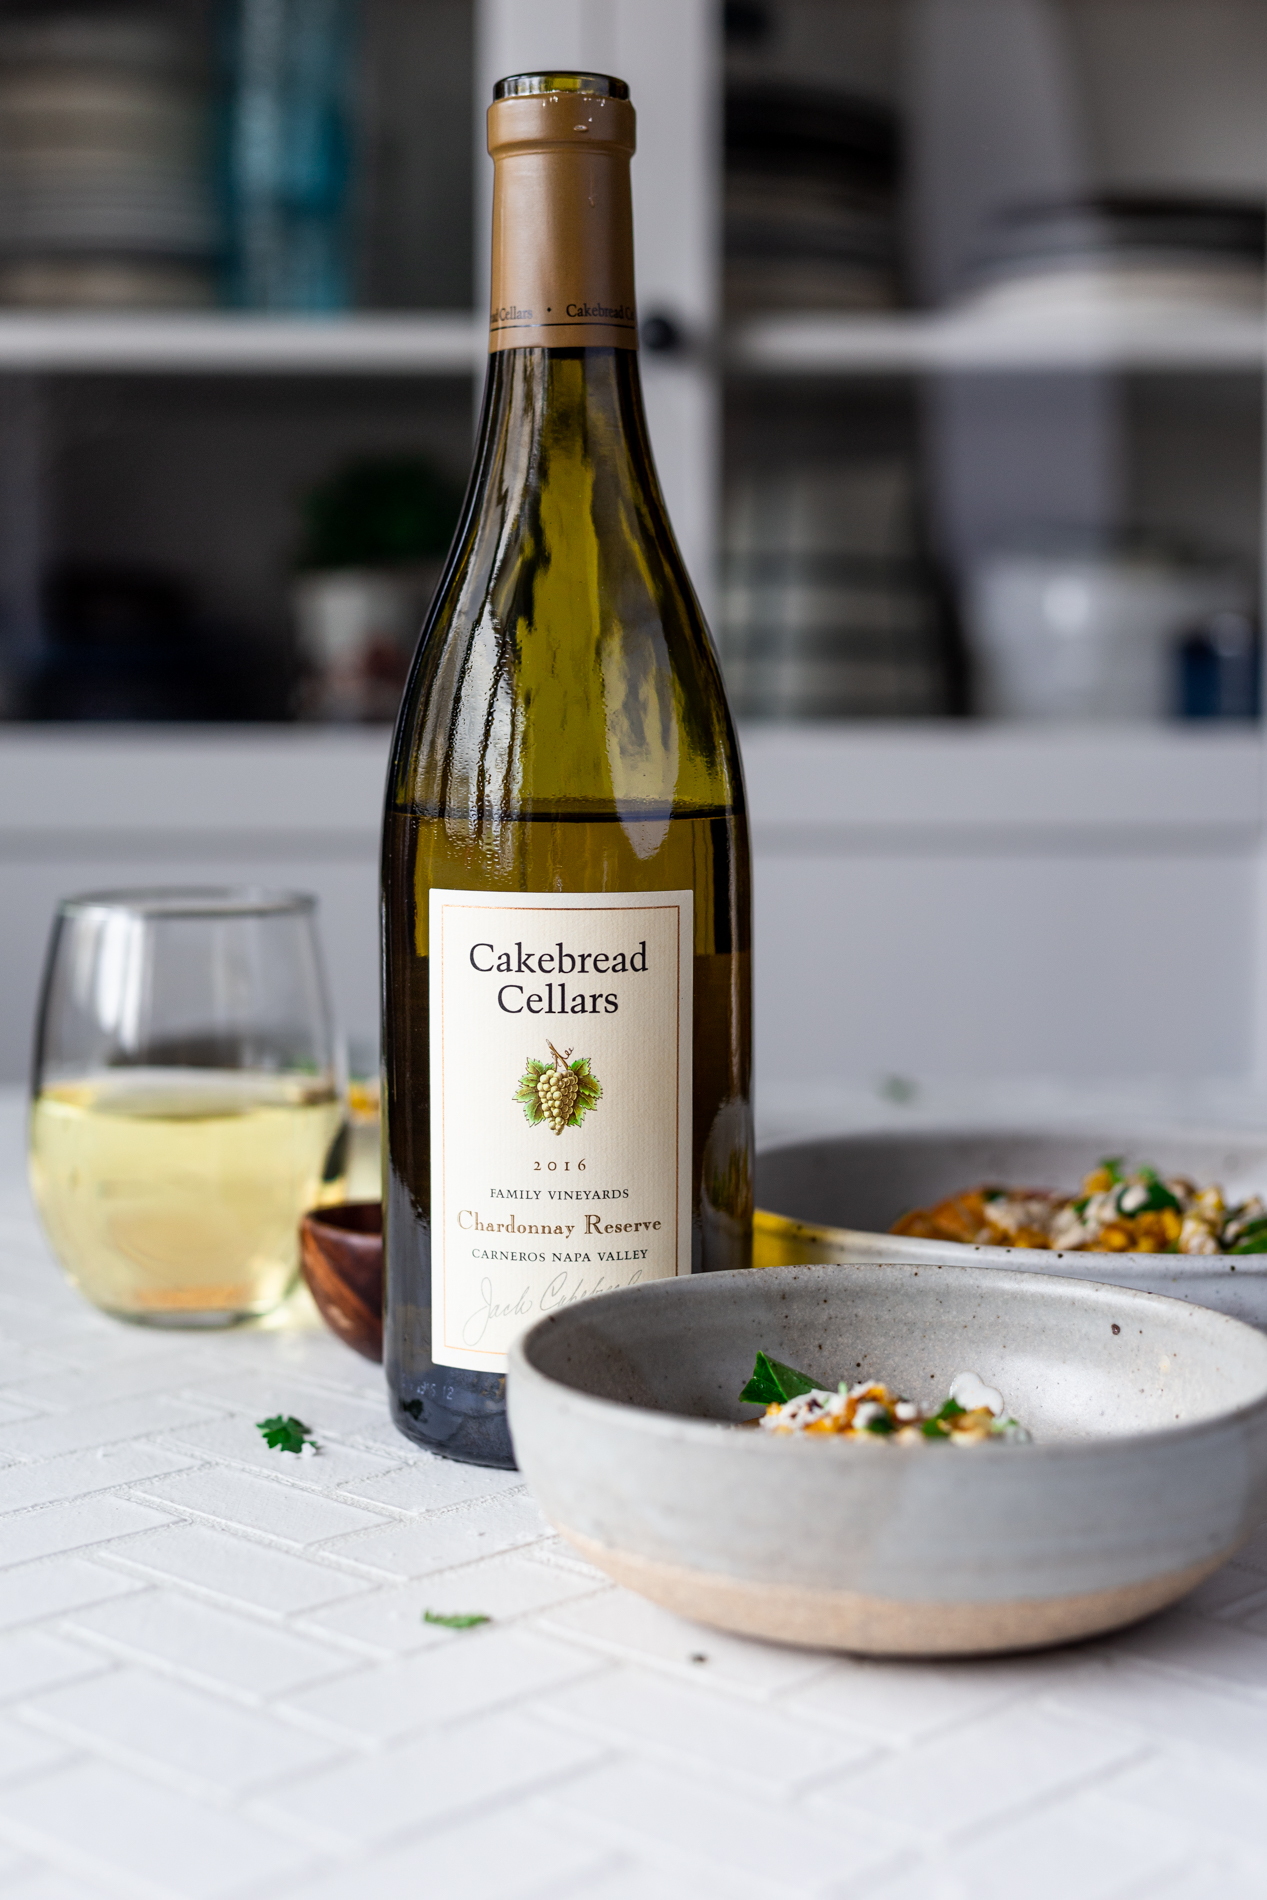 straight-ahead view of a bottle of Cakebread Cellars Chardonnay Reserve surrounded by bowls of mexican street corn salad and a glass of wine